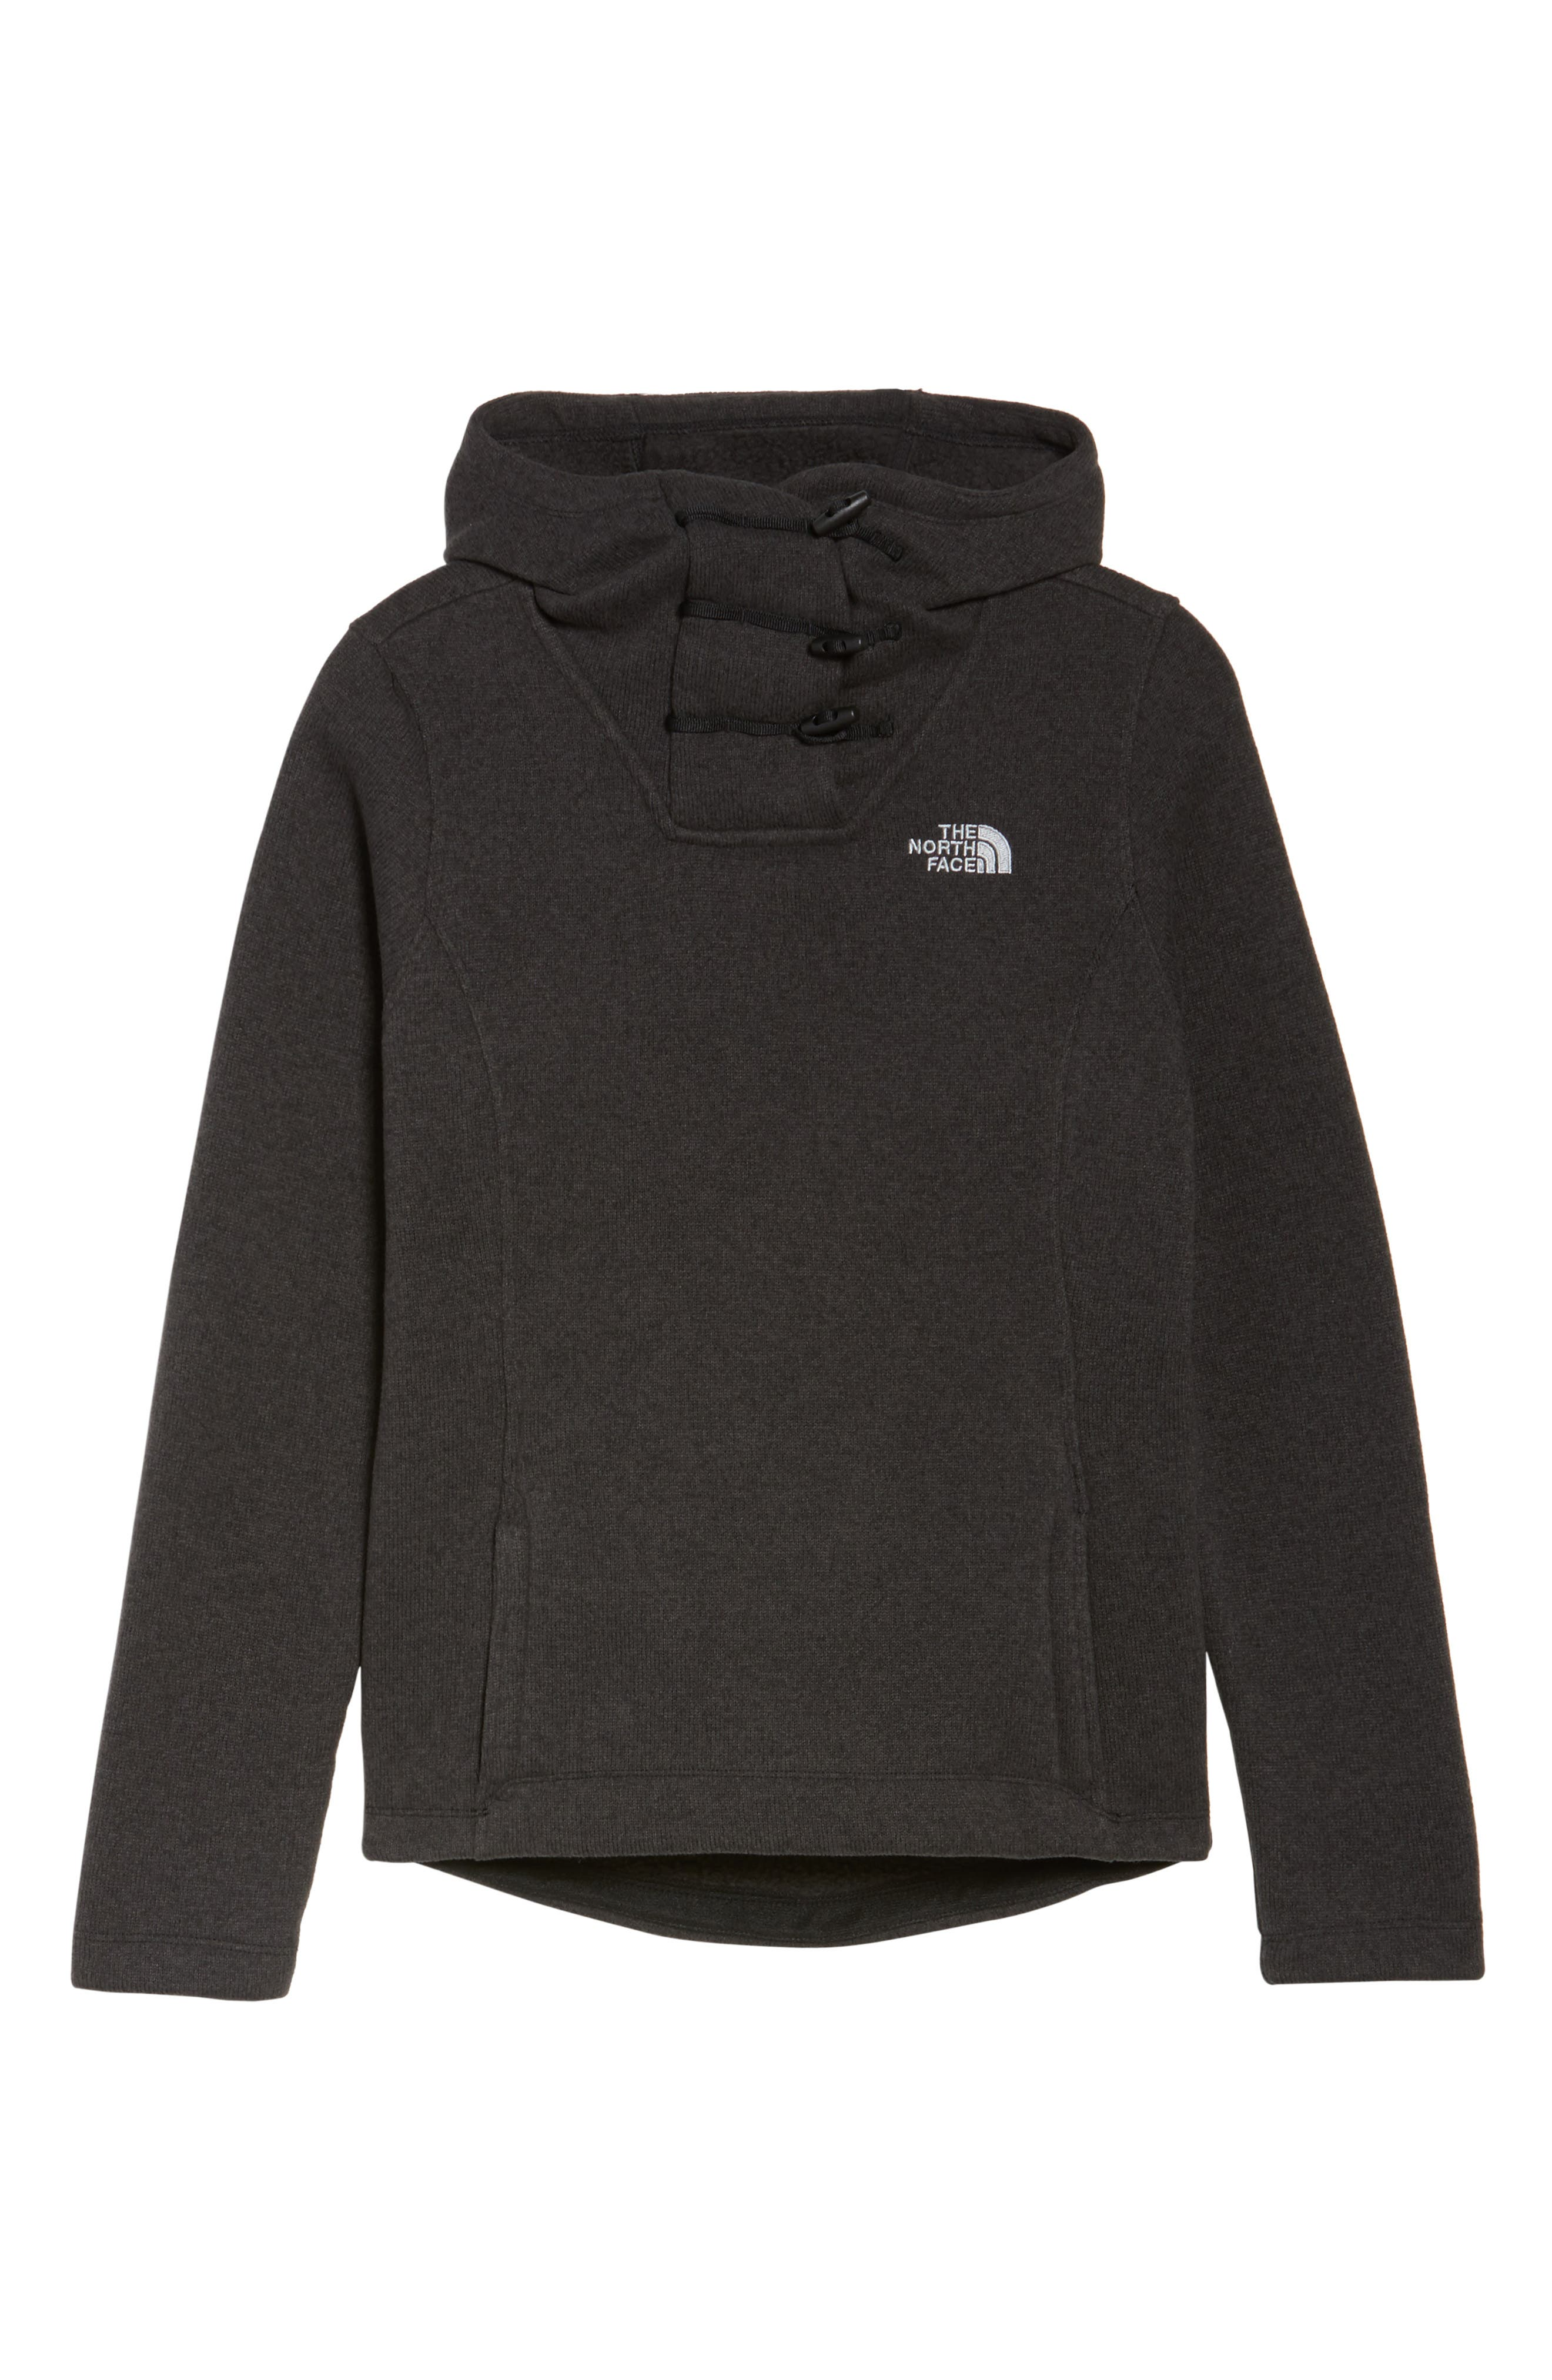 Crescent Hooded Pullover,                             Alternate thumbnail 7, color,                             TNF BLACK HEATHER